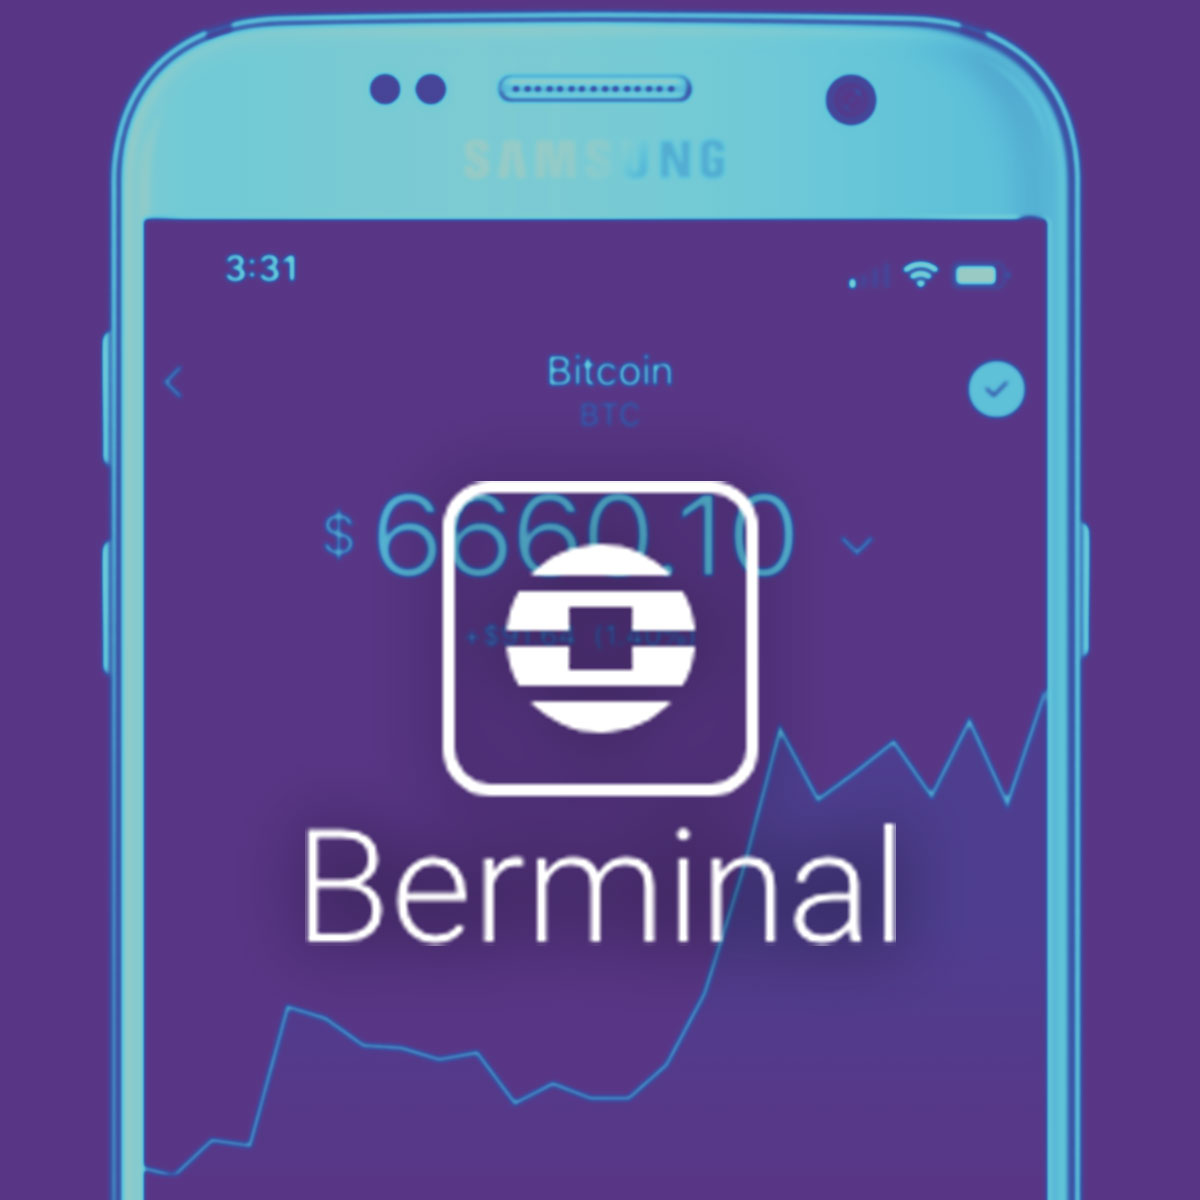 Cryptocurrency mobile app - Berminal - Mobile App